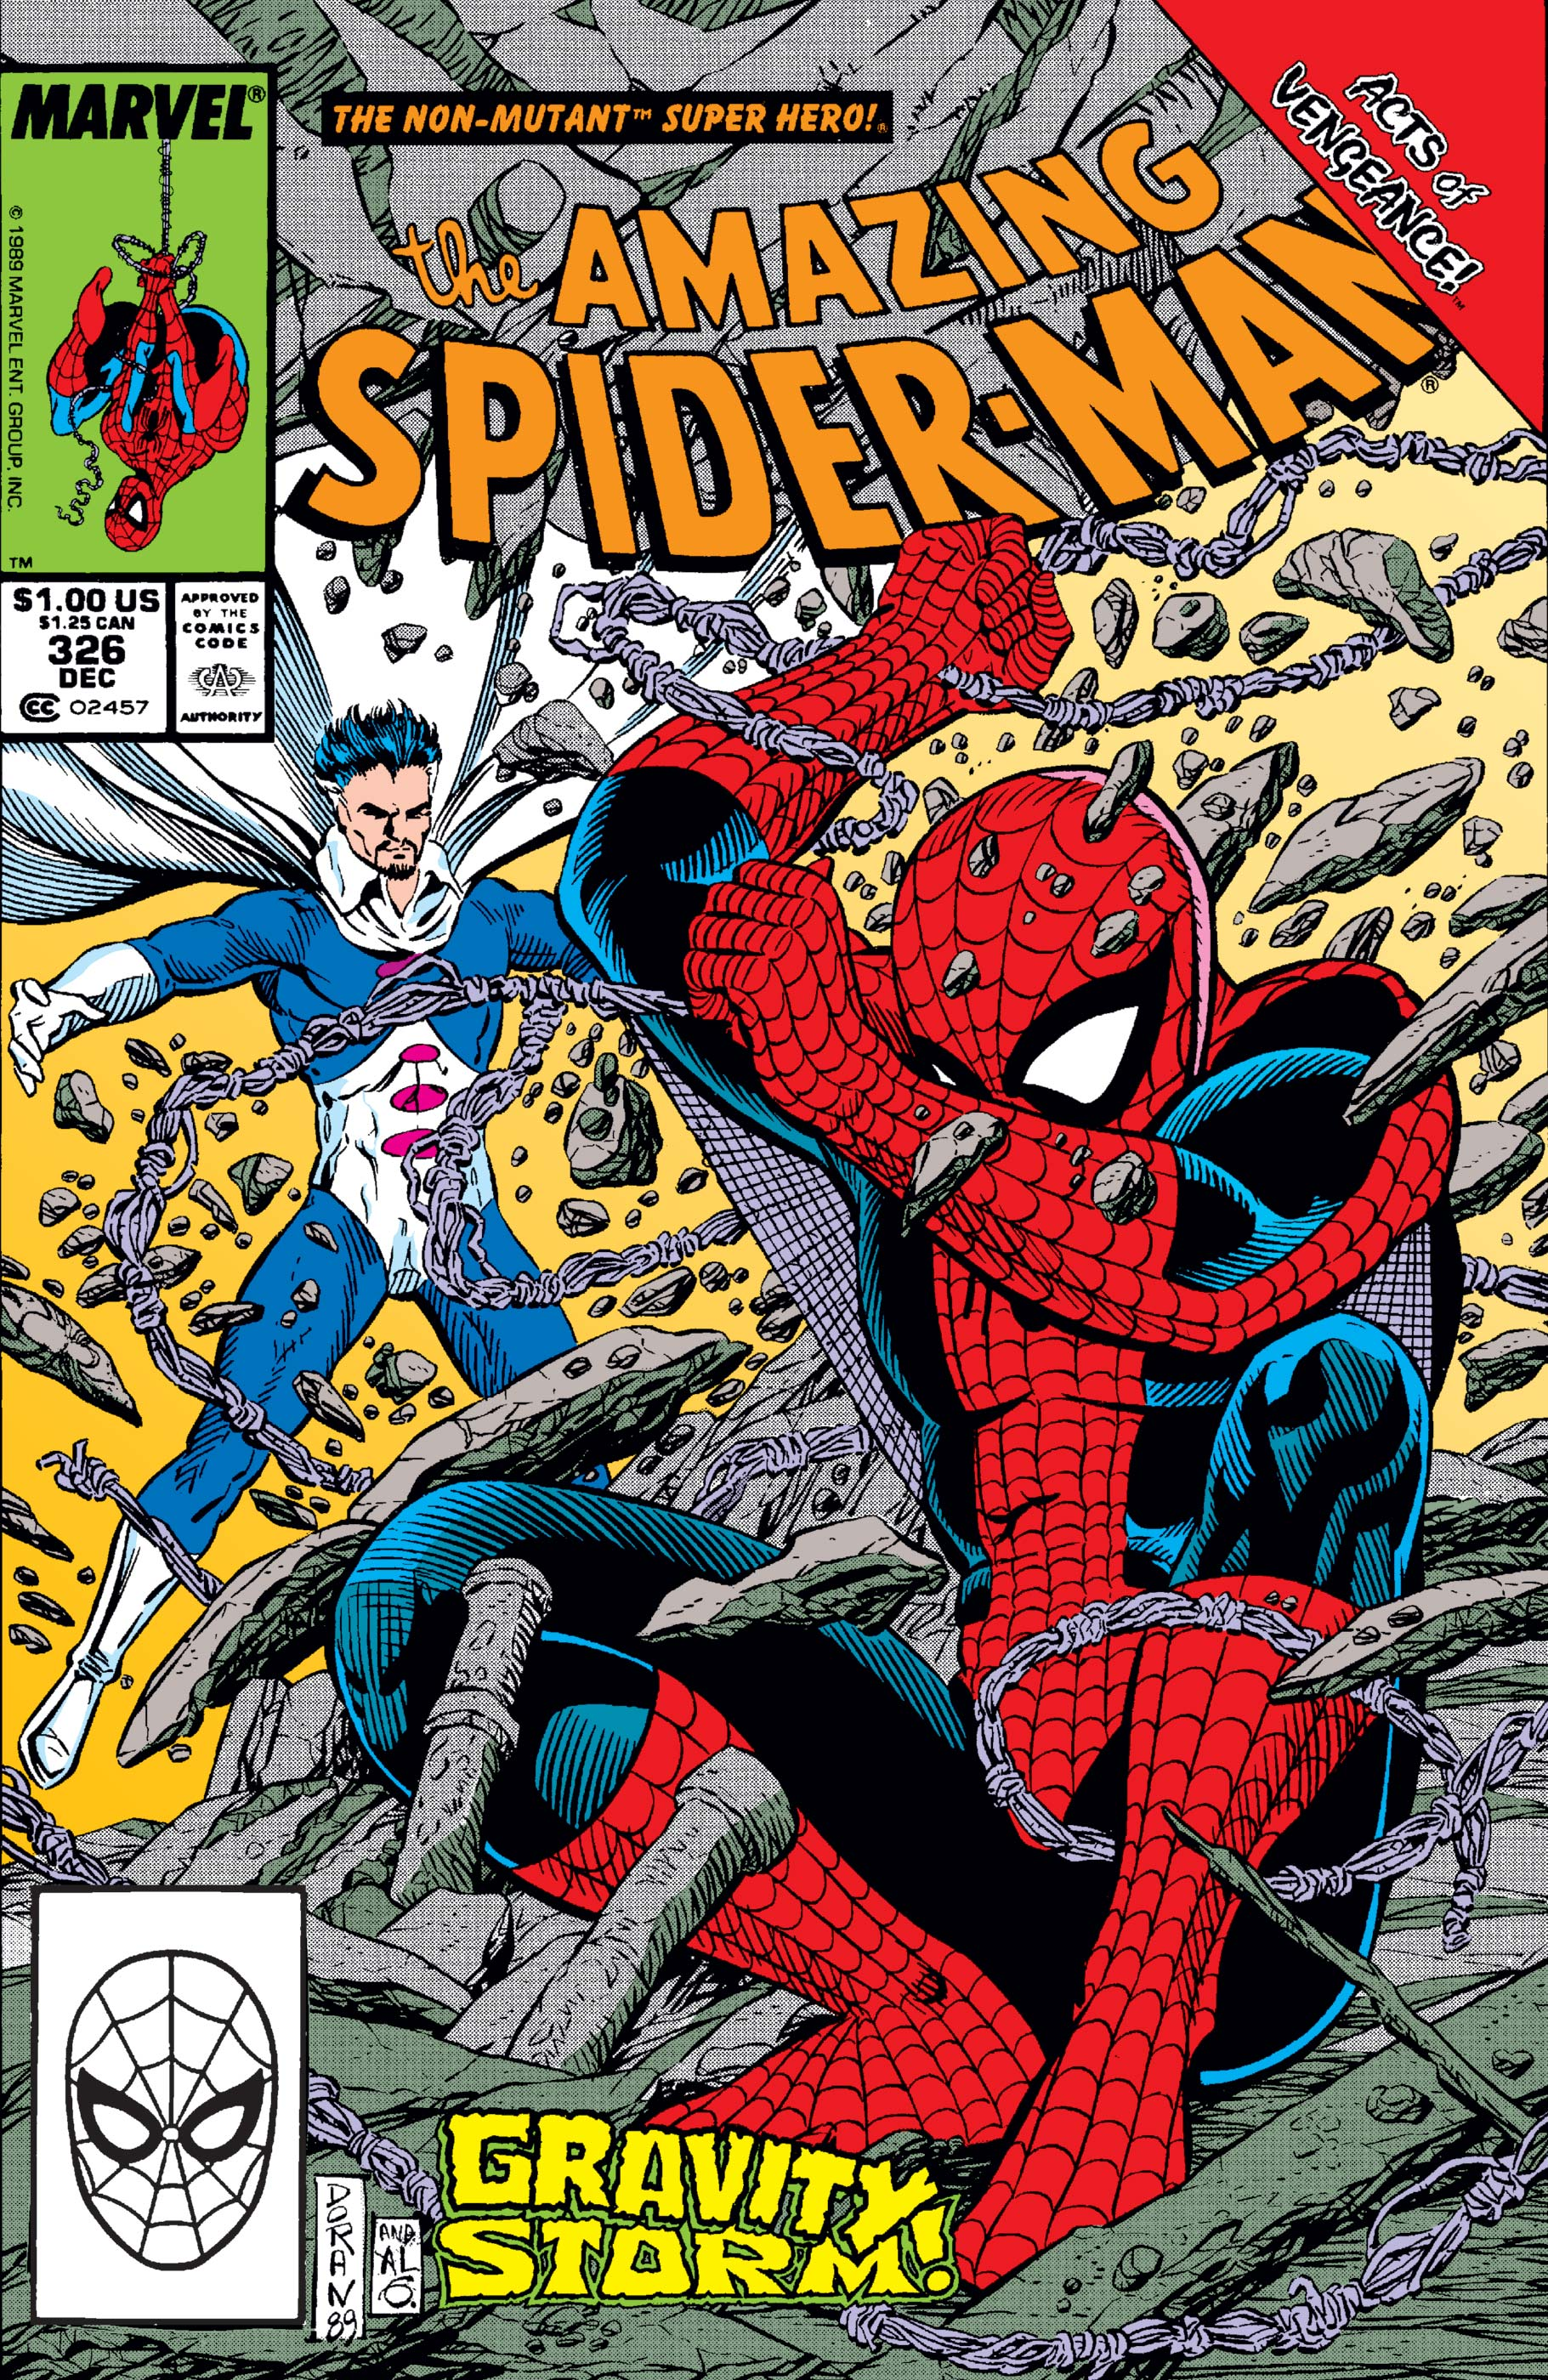 The Amazing Spider-Man (1963) #326